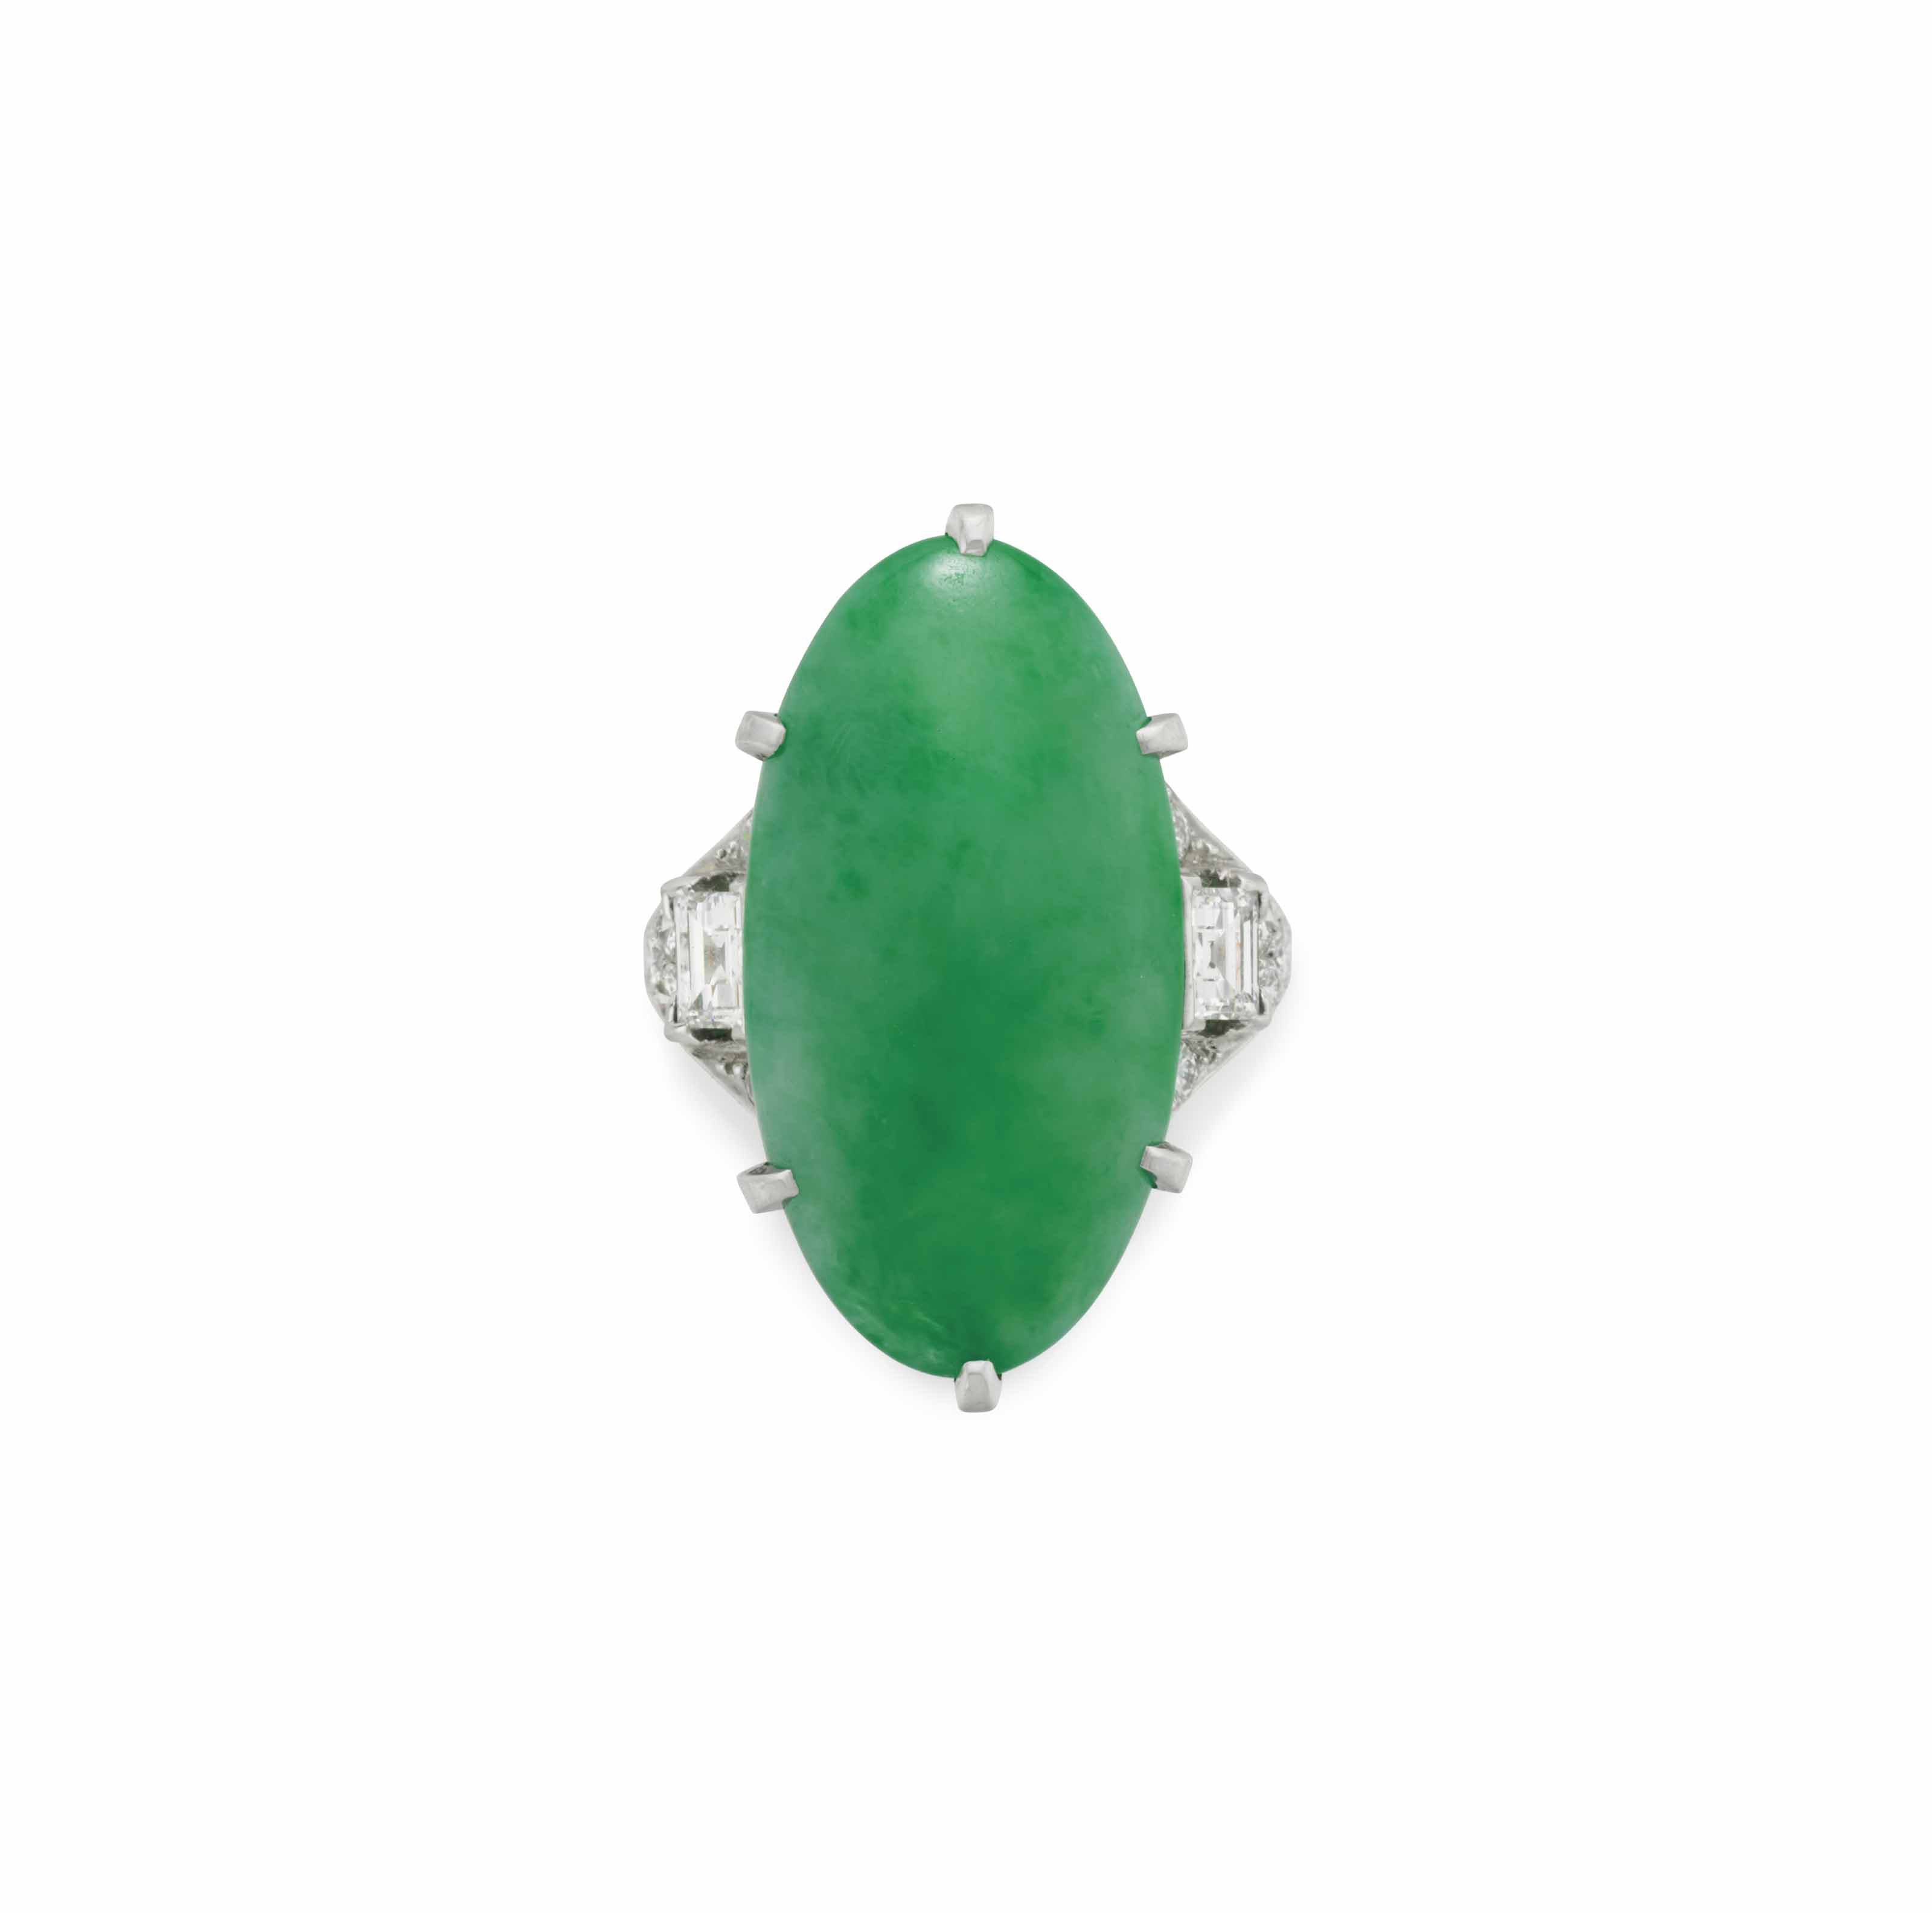 AN ART DECO JADE AND DIAMOND RING, BY J. E. CALDWELL & CO.